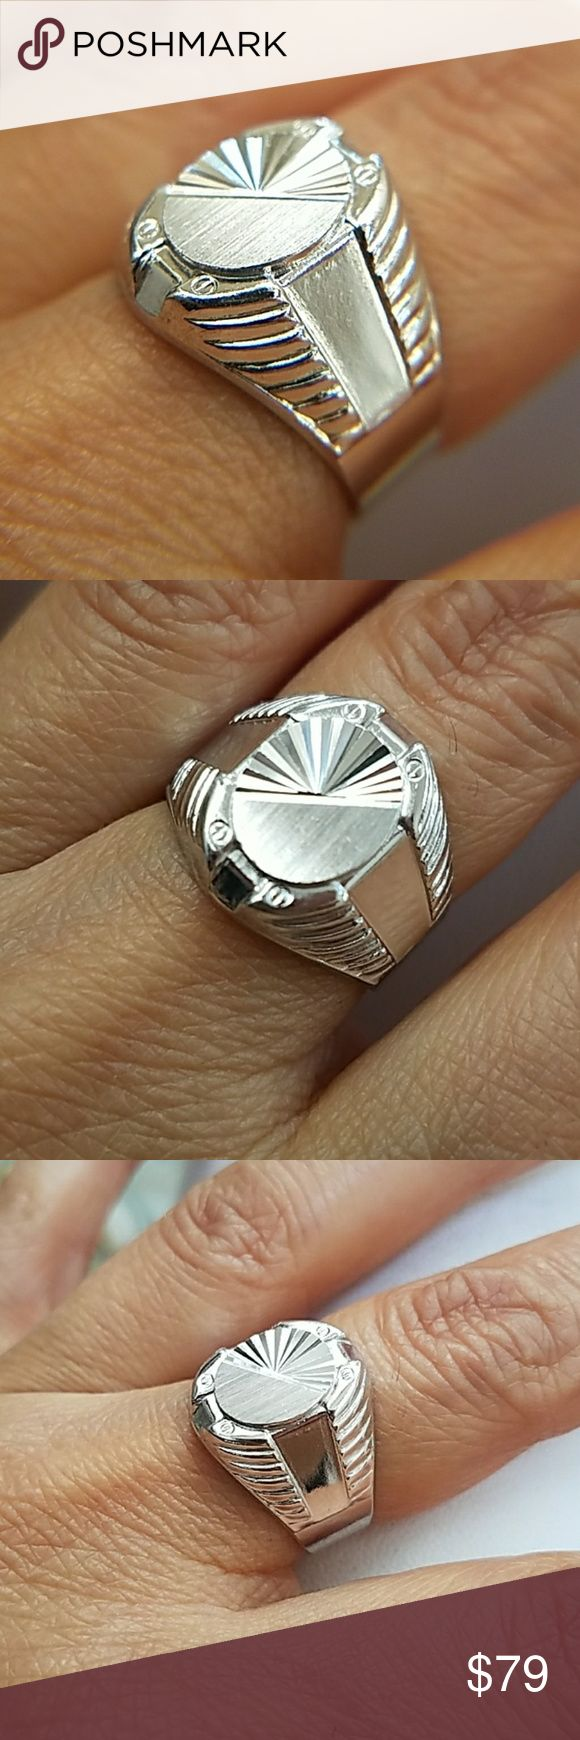 Silver Men's Signet Ring 15mm sz 7 8 9 10 11 12 13 14k White Gold plated over Sterling silver men's Signet Ring Available in sizes 7 8 9 10 11 12 13 With .925 Stamp inside the band  made in Italy Comes in a beautiful jewelry box  Item# SH0020 Accessories Jewelry